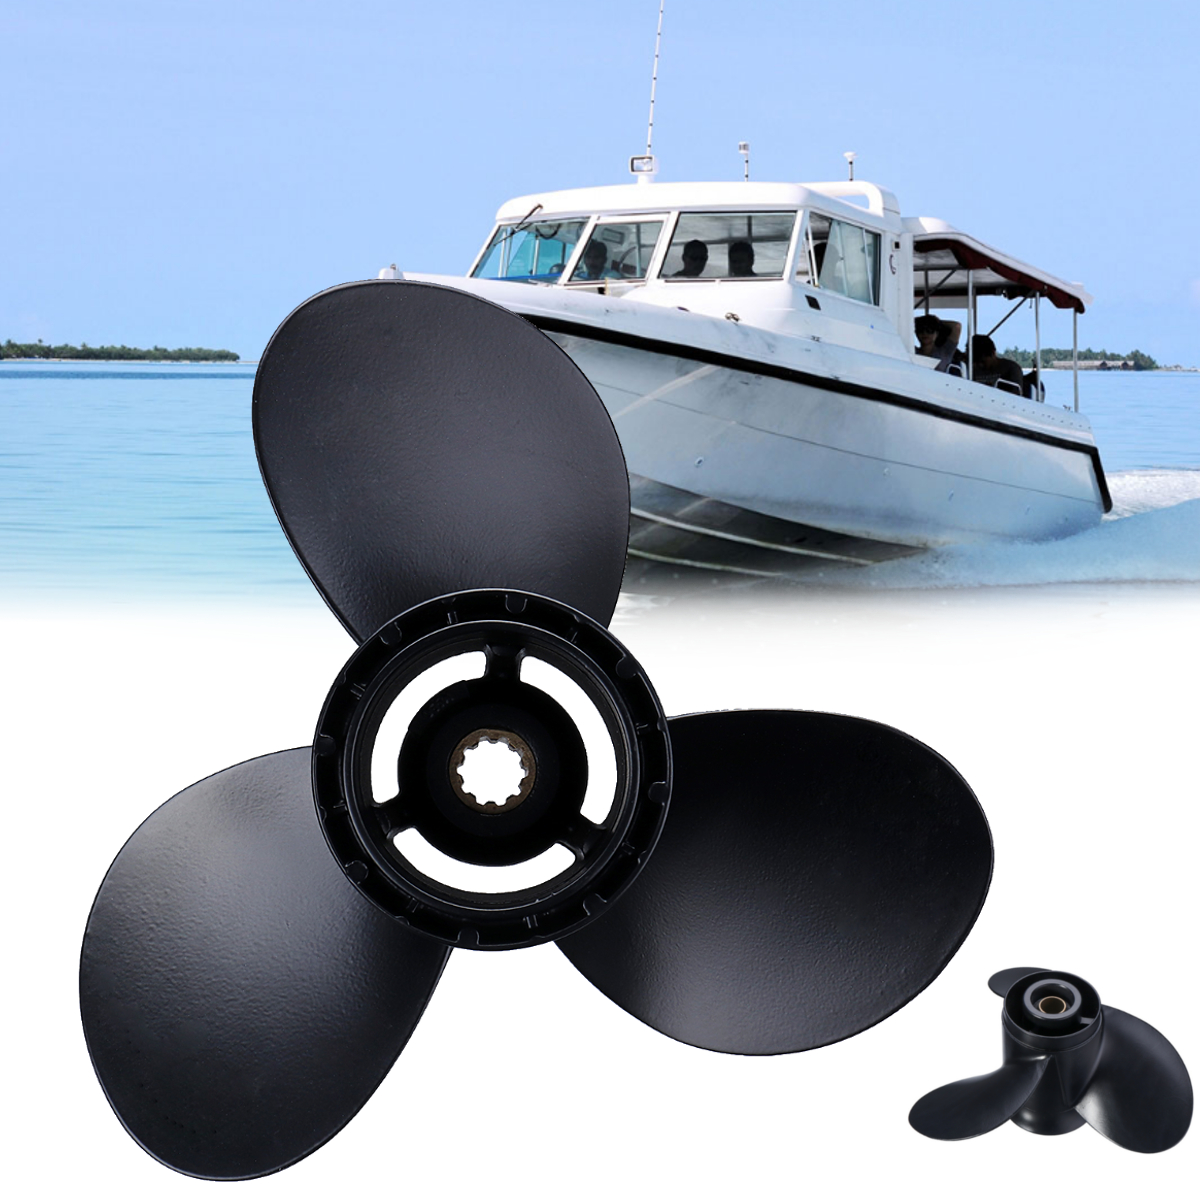 58100-96430-019 Boat Outboard Propeller 260mm x 12 for Suzuki 20-30HP 3 Blades 10 Spline Tooths Black R Rotation Aluminum Alloy